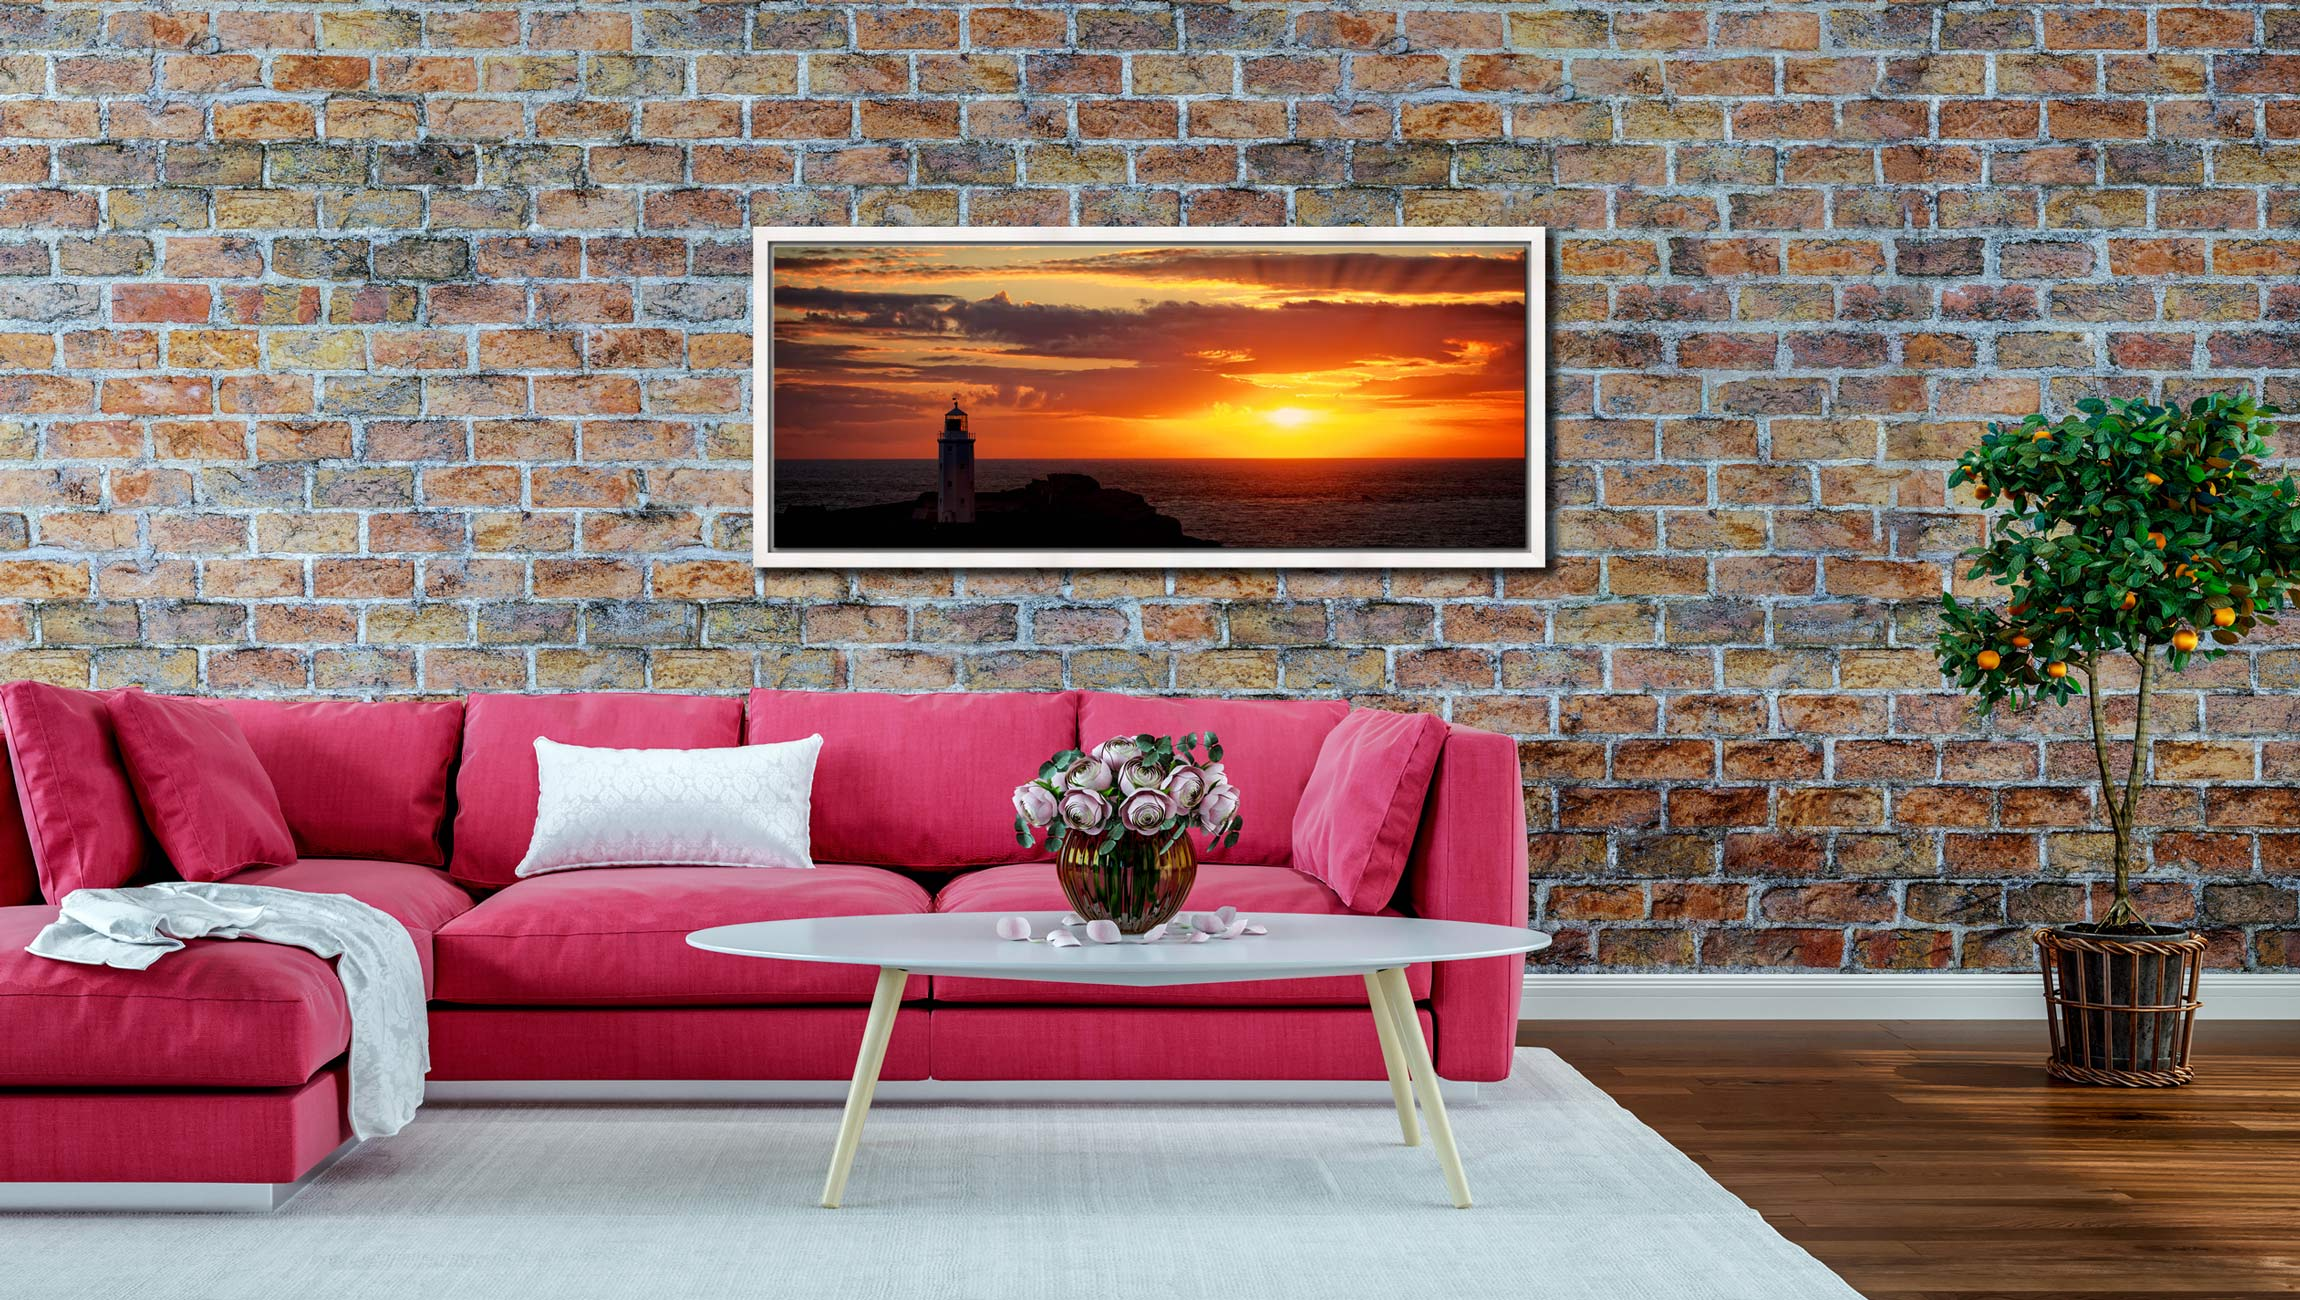 The golden sun beaming across the skies over Godrevy Lighthouse in Cornwall - White Maple floater frame with acrylic glazing on Wall